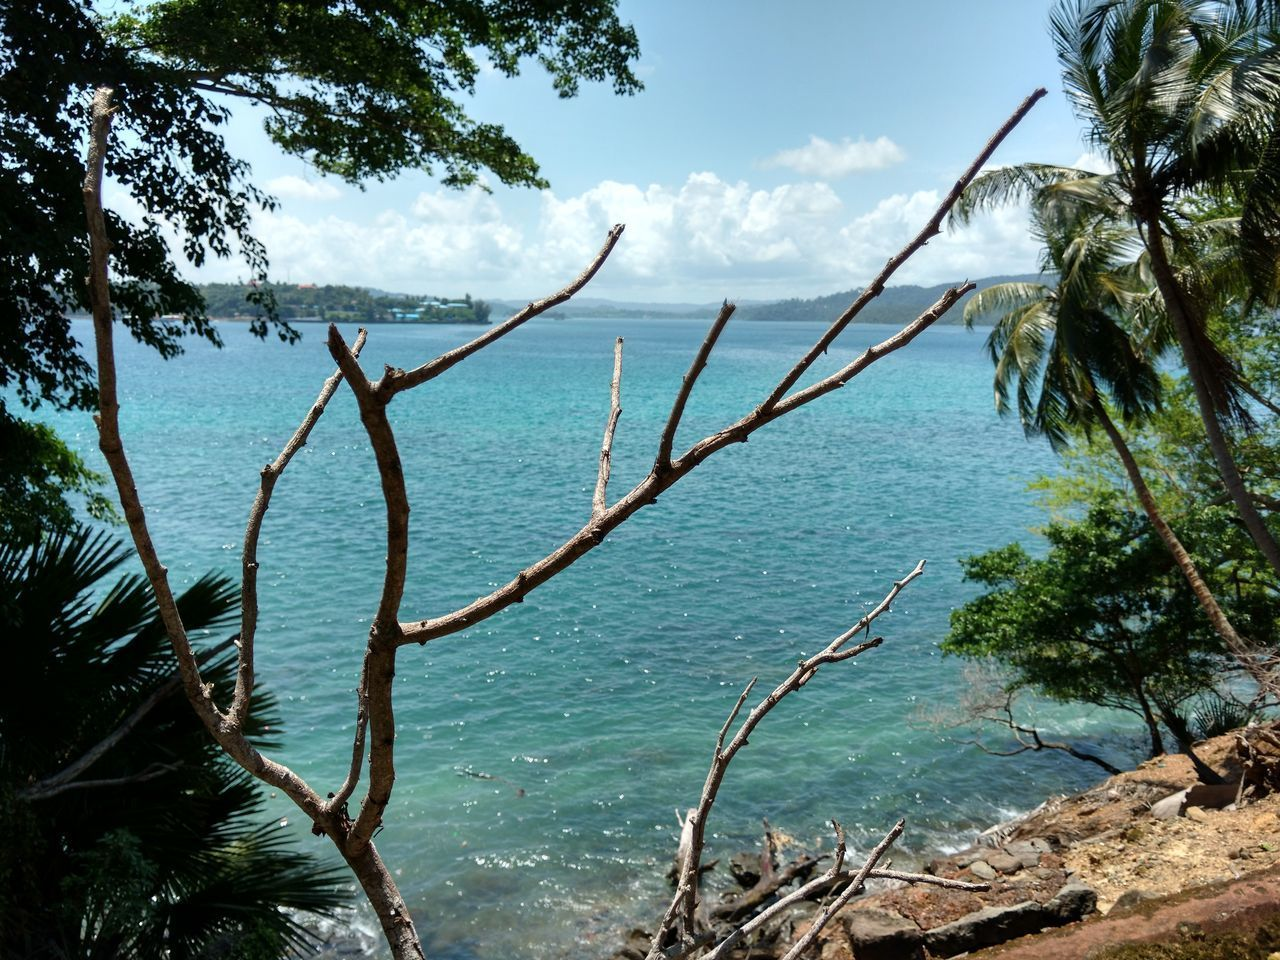 Andaman & Nicobar Islands Tree Water Nature Outdoors Day No People Growth Sky Beauty In Nature Branch Plant Close-up Tree Trunk Ocean Photography Travel Destination Tree Nature Travel Destinations Famous Places Trees And Sky Branches Of Trees Beautiful Day Blue Skyandclouds